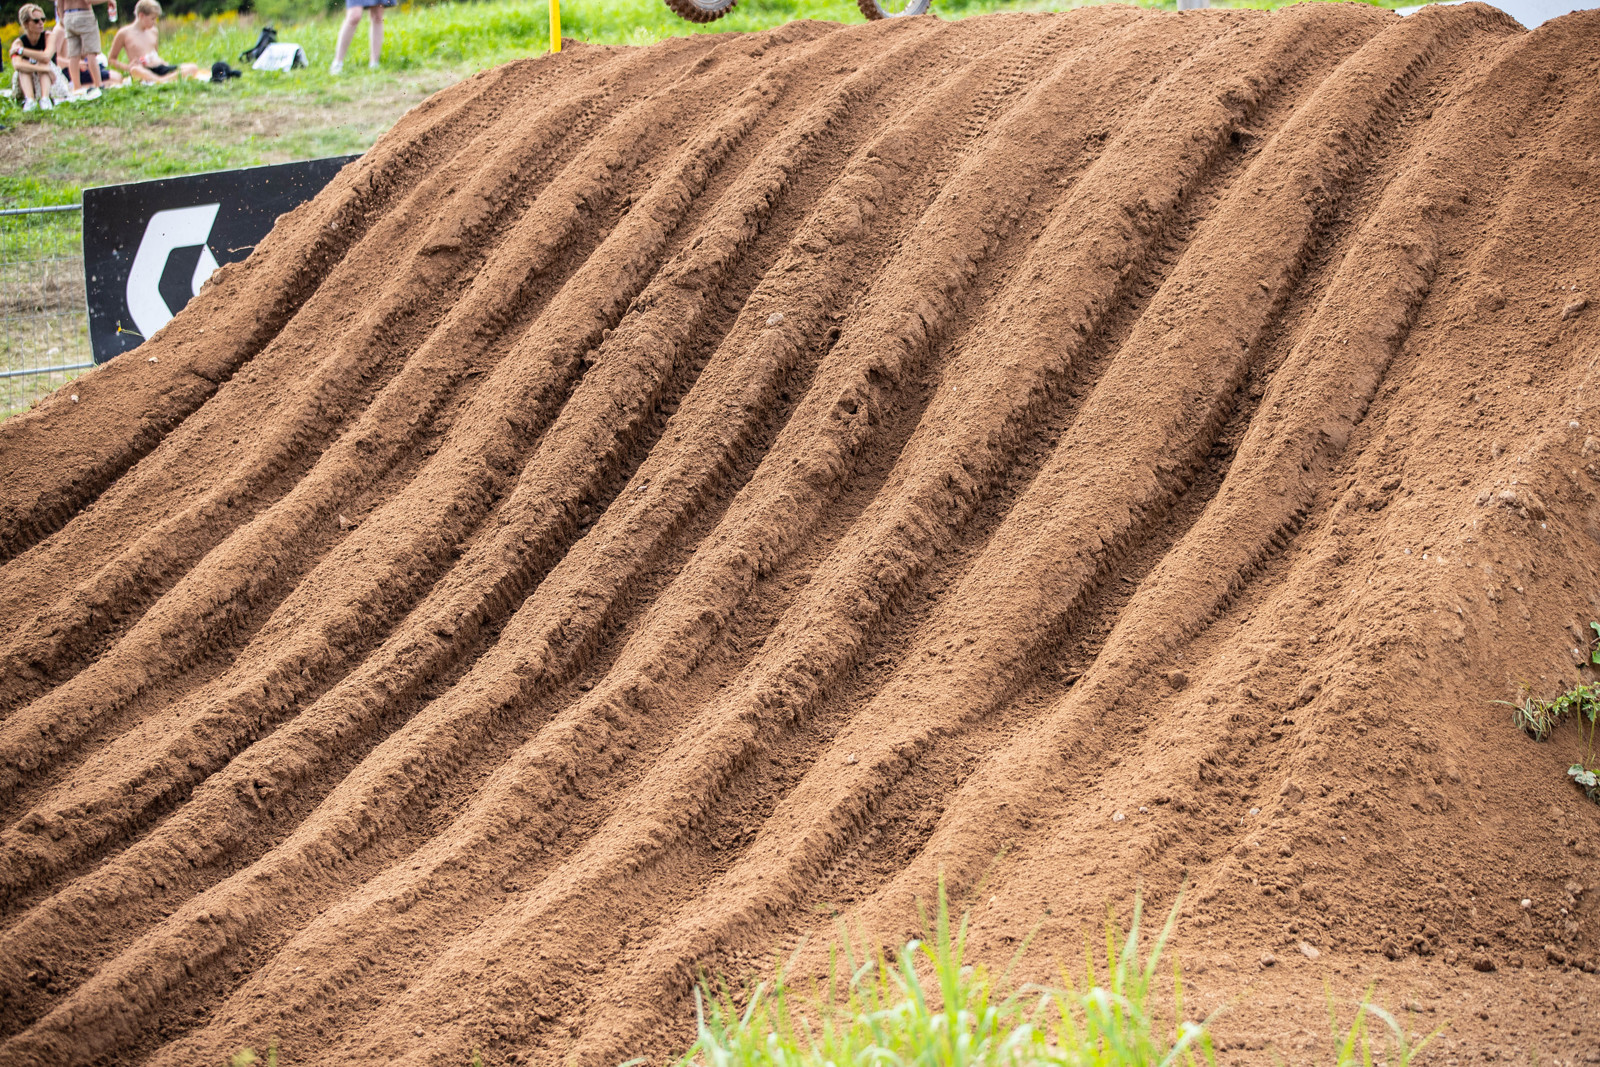 The Latvian track got super rough and super rutted. If you haven't yet, check out the highlights video. Definitely worth a watch.